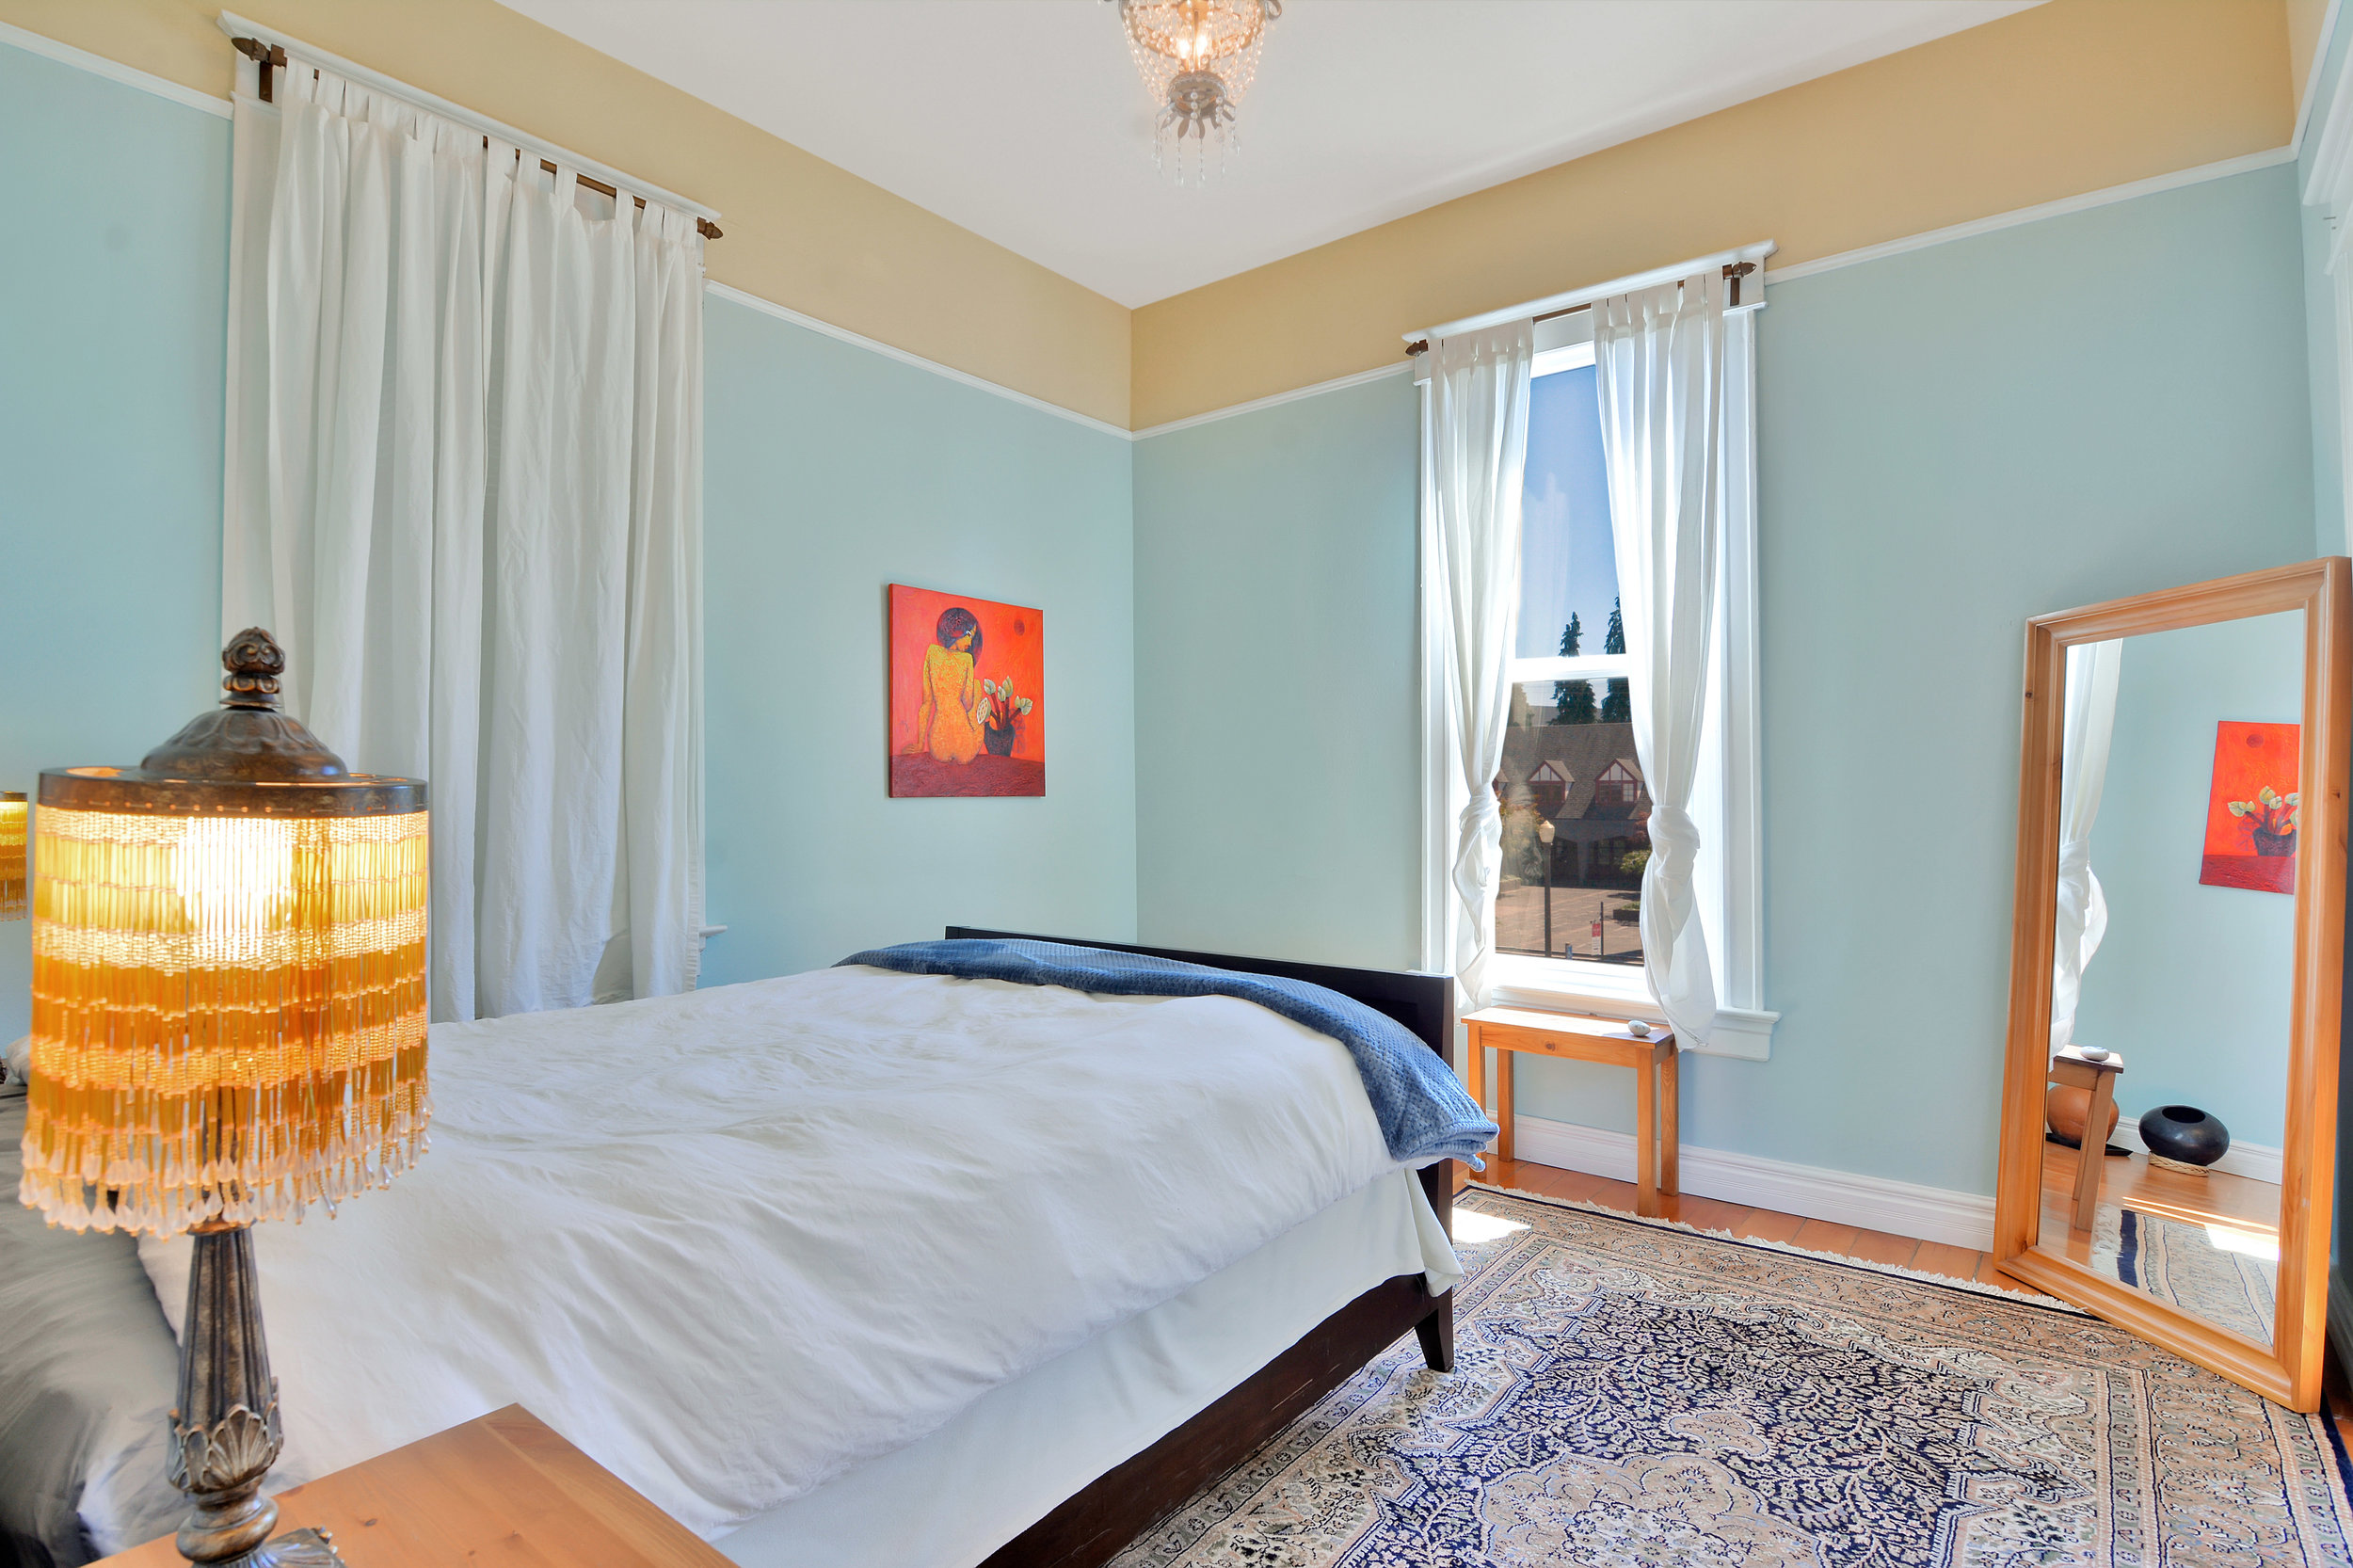 Main bedroom with natural light.